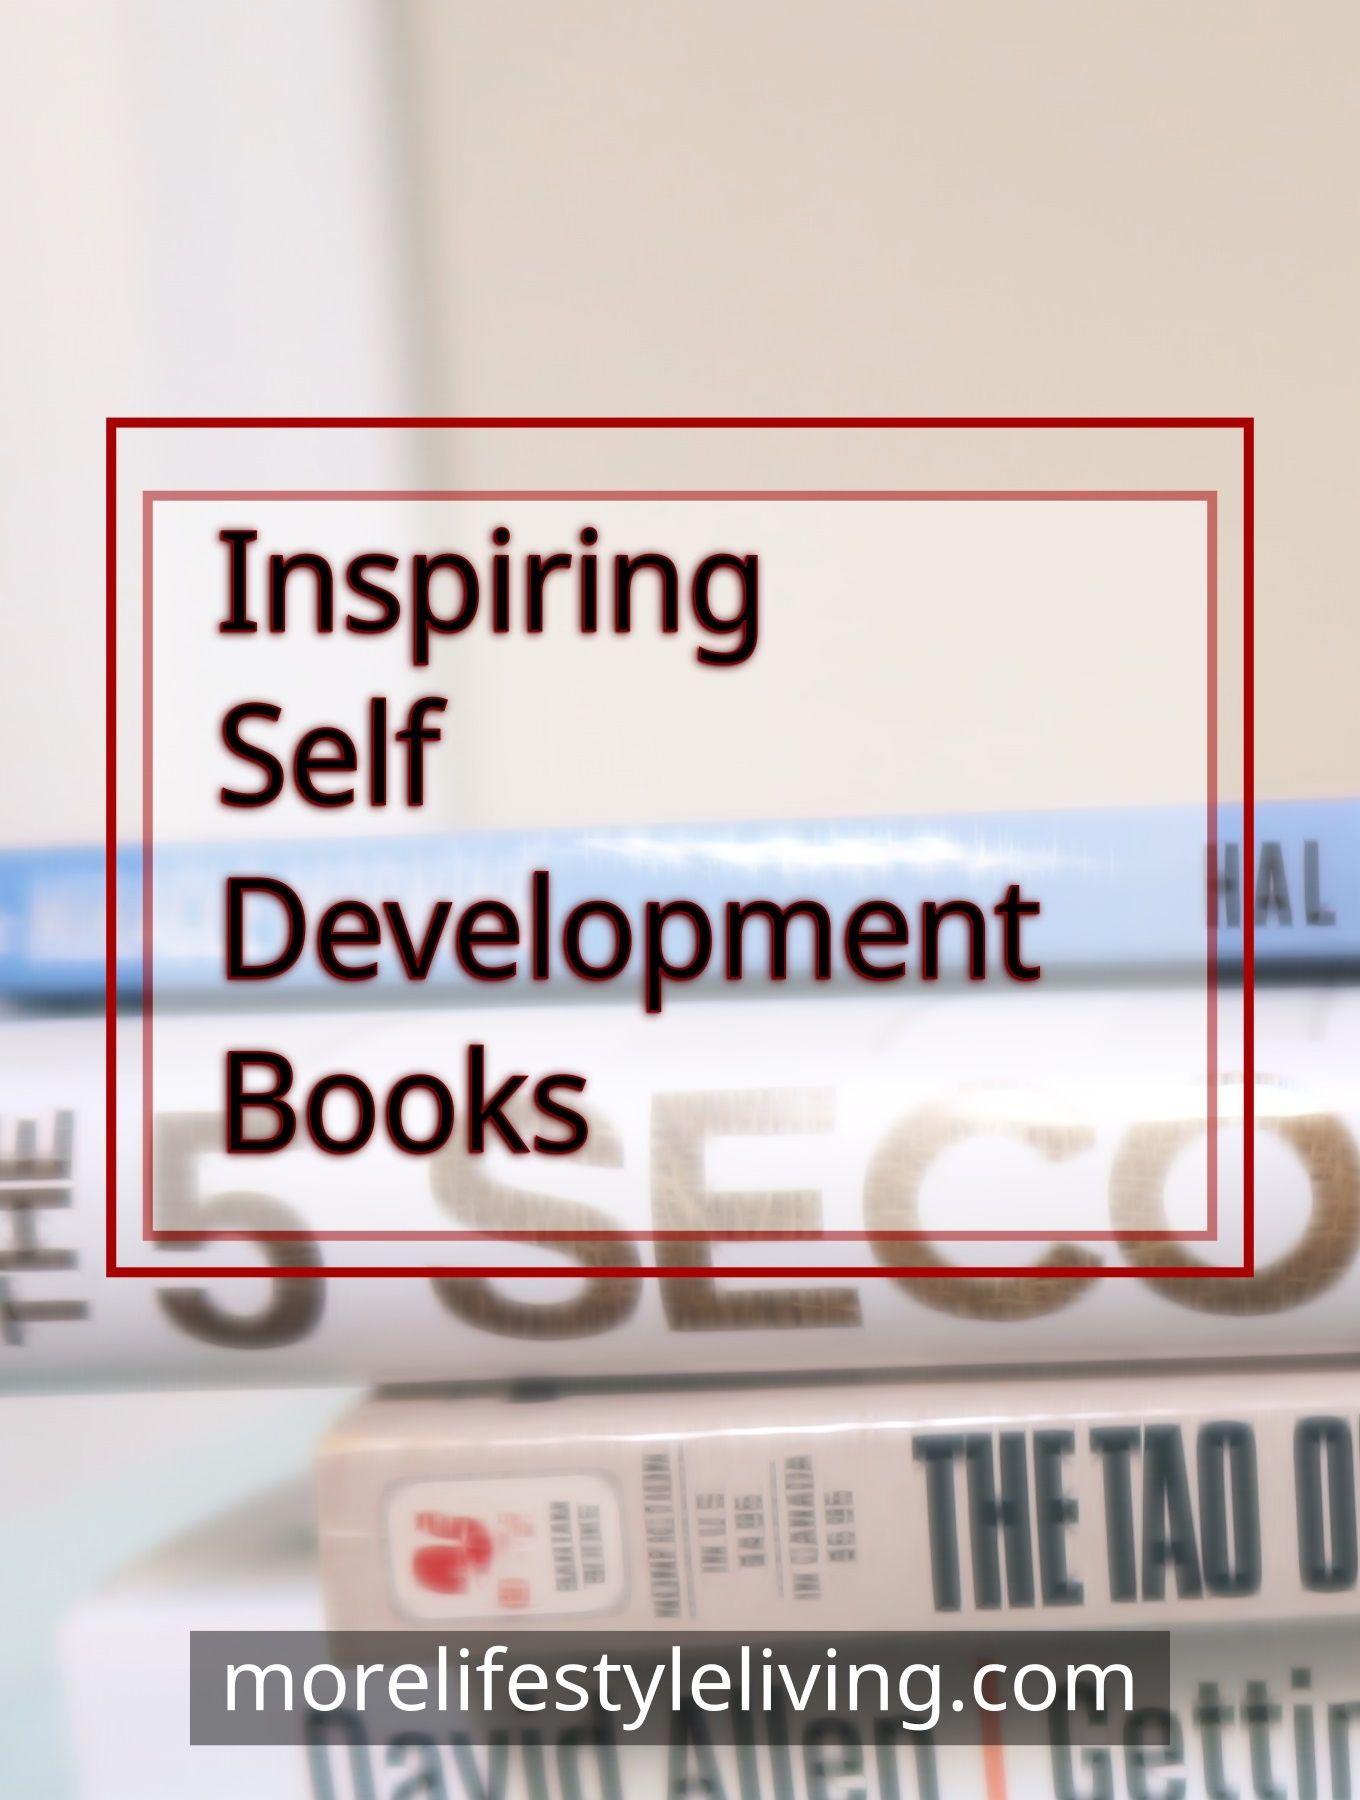 Inspiring Self Development Books; Getting Things Done by David Allen The Tao of Leadership The 5 Second Rule by Mel Robbins The Miracle Morning by Hal Elrod  #morelifestyleliving #personaldevelopment